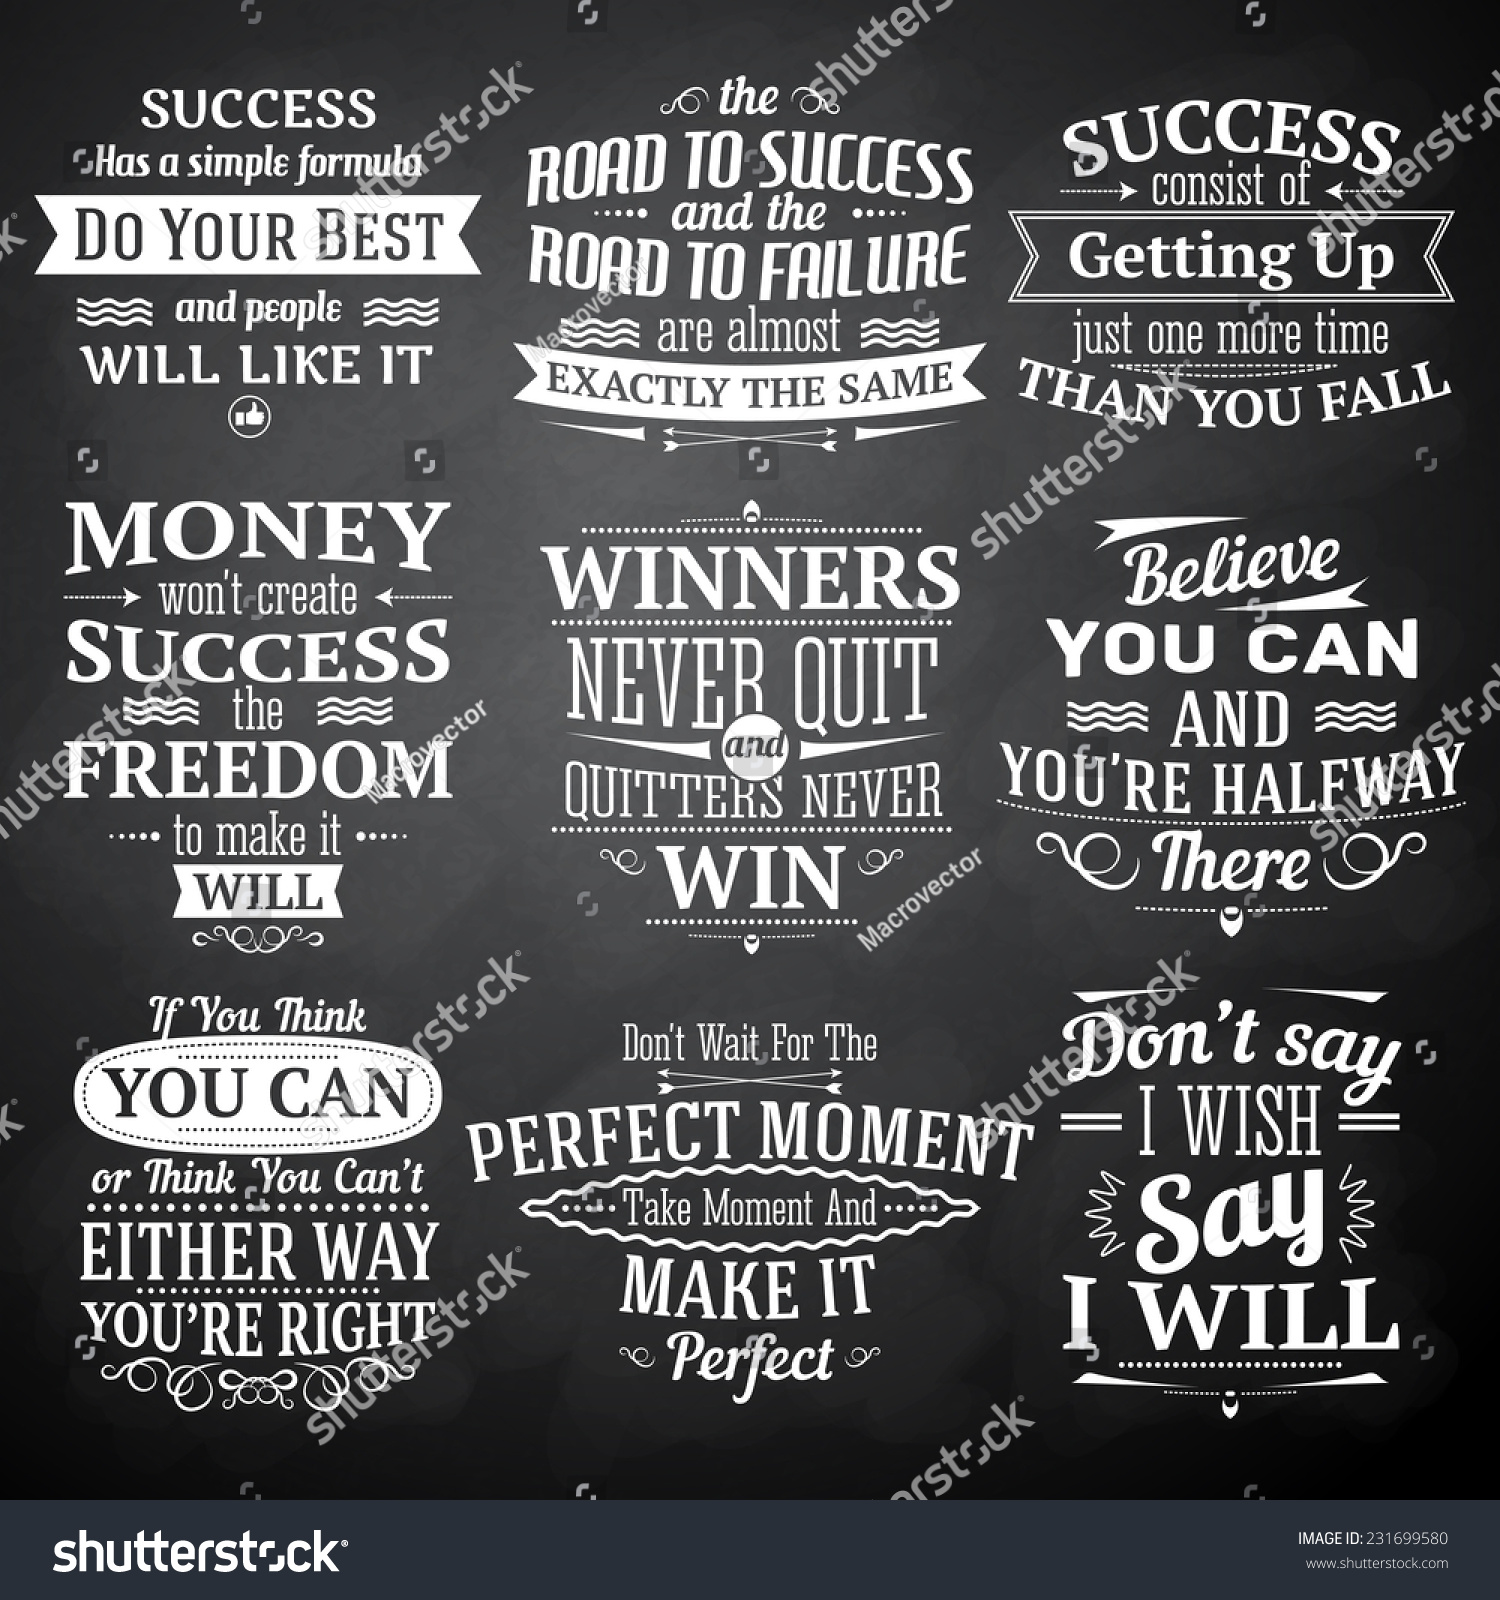 Inspirational Quotes Motivation: Success Motivational Inspirational Quotes Chalkboard